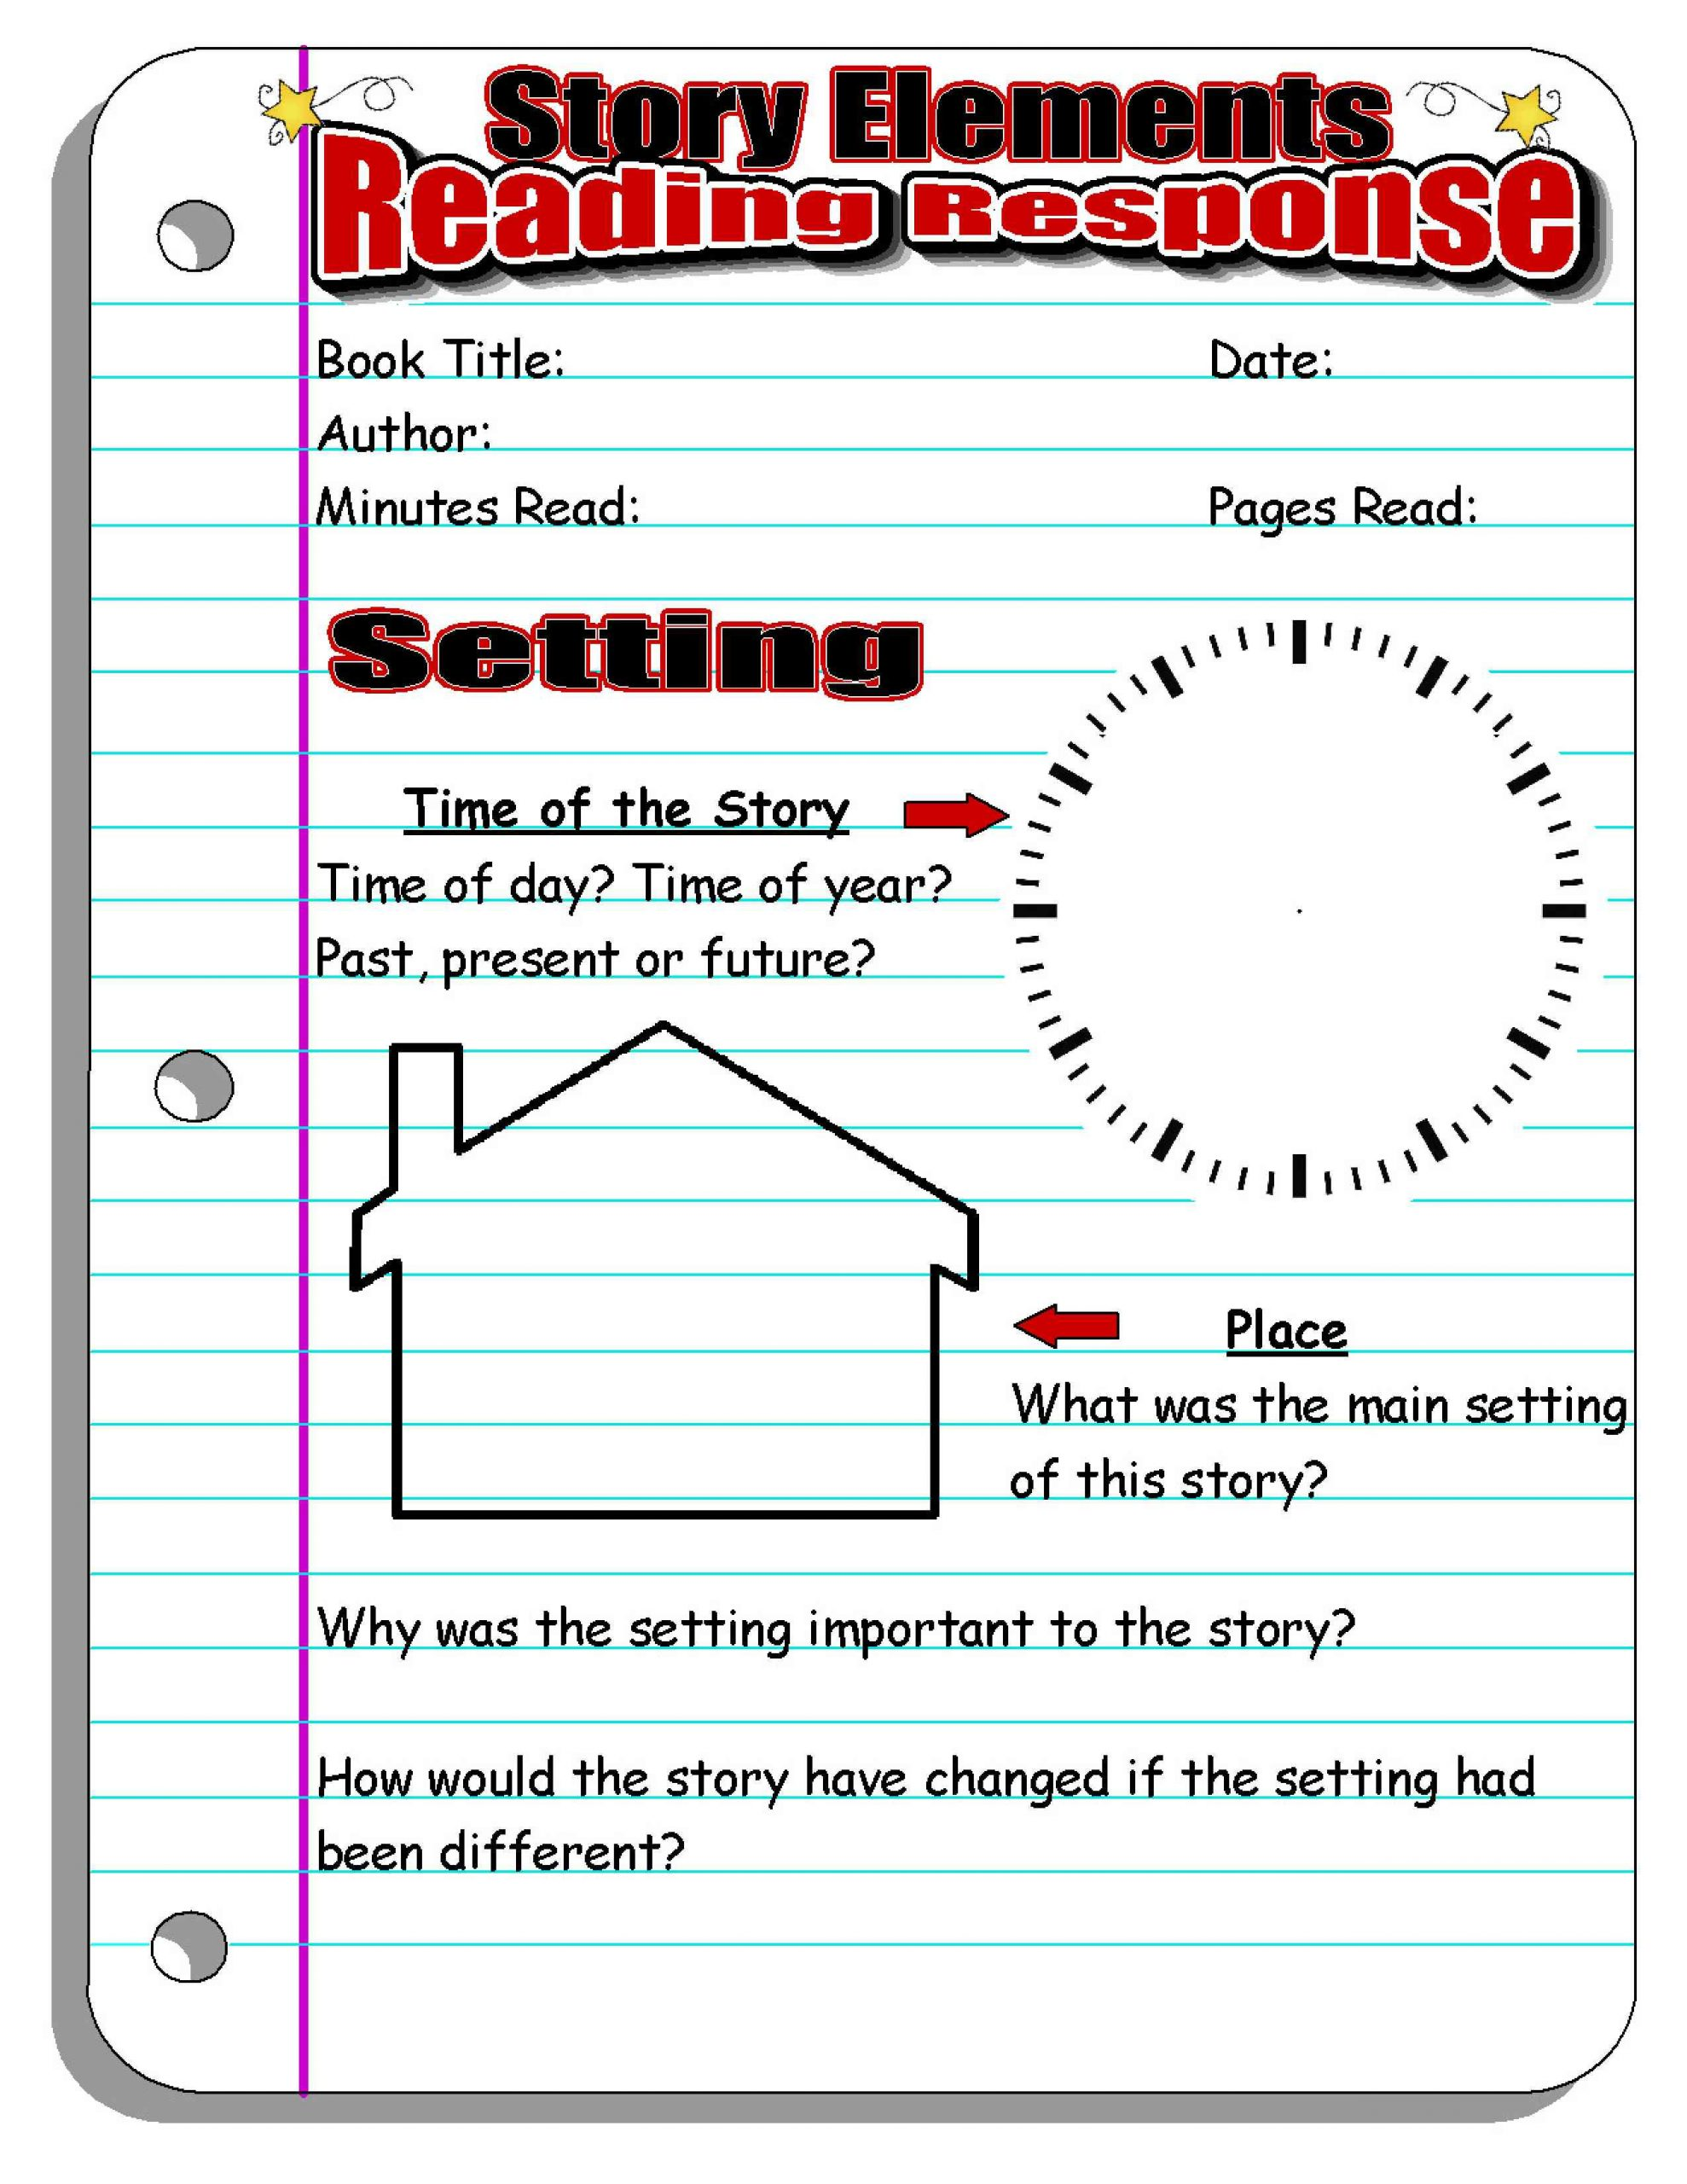 Story Elements Worksheet 3rd Grade Story Elements Worksheets 3rd Grade